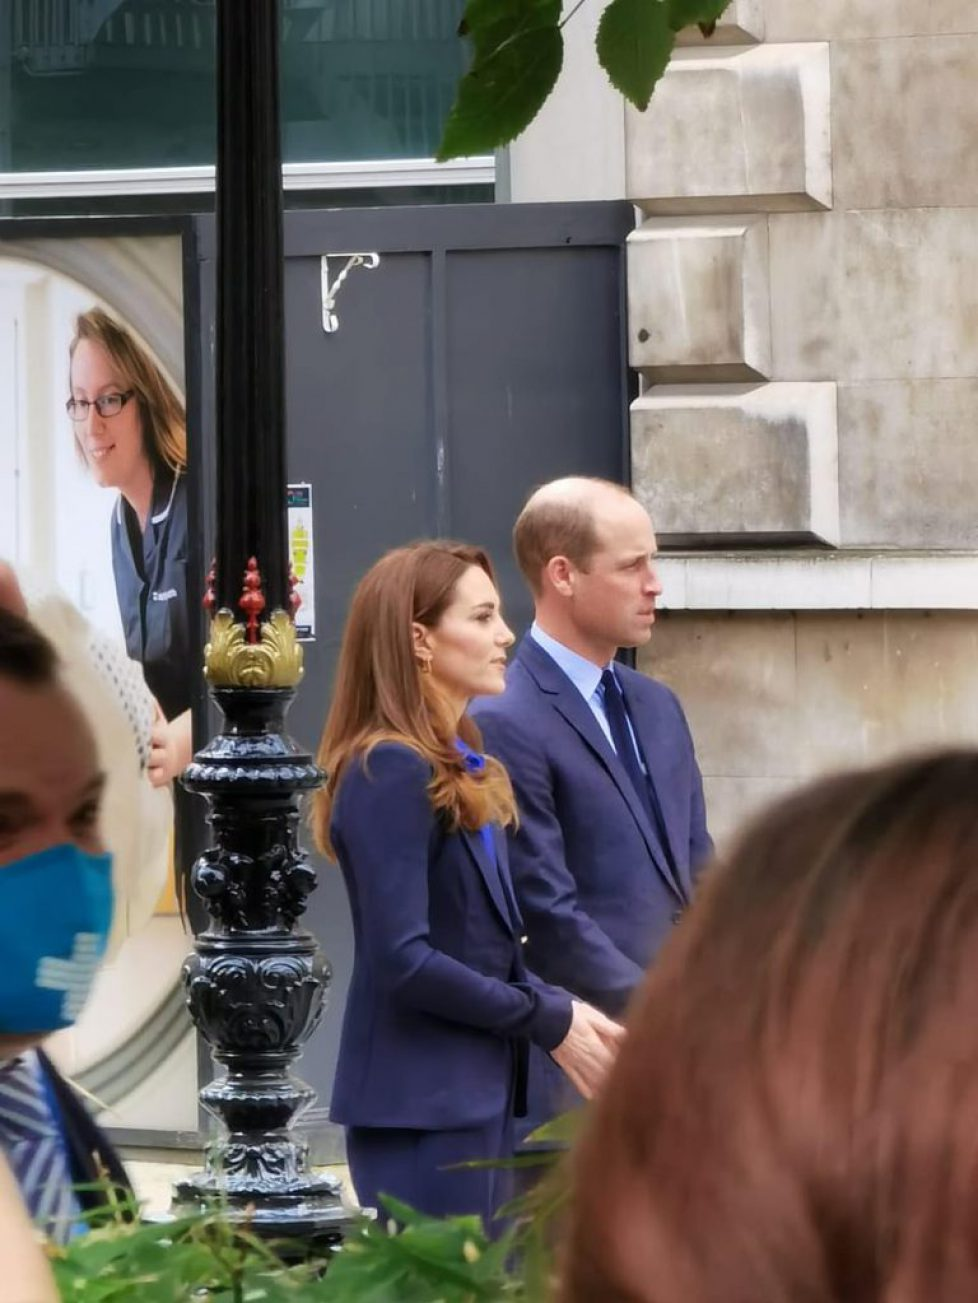 34626016-8860337-The_Duchess_of_Cambridge_sported_a_shirt_of_a_brighter_blue_bene-a-1_1603233636333